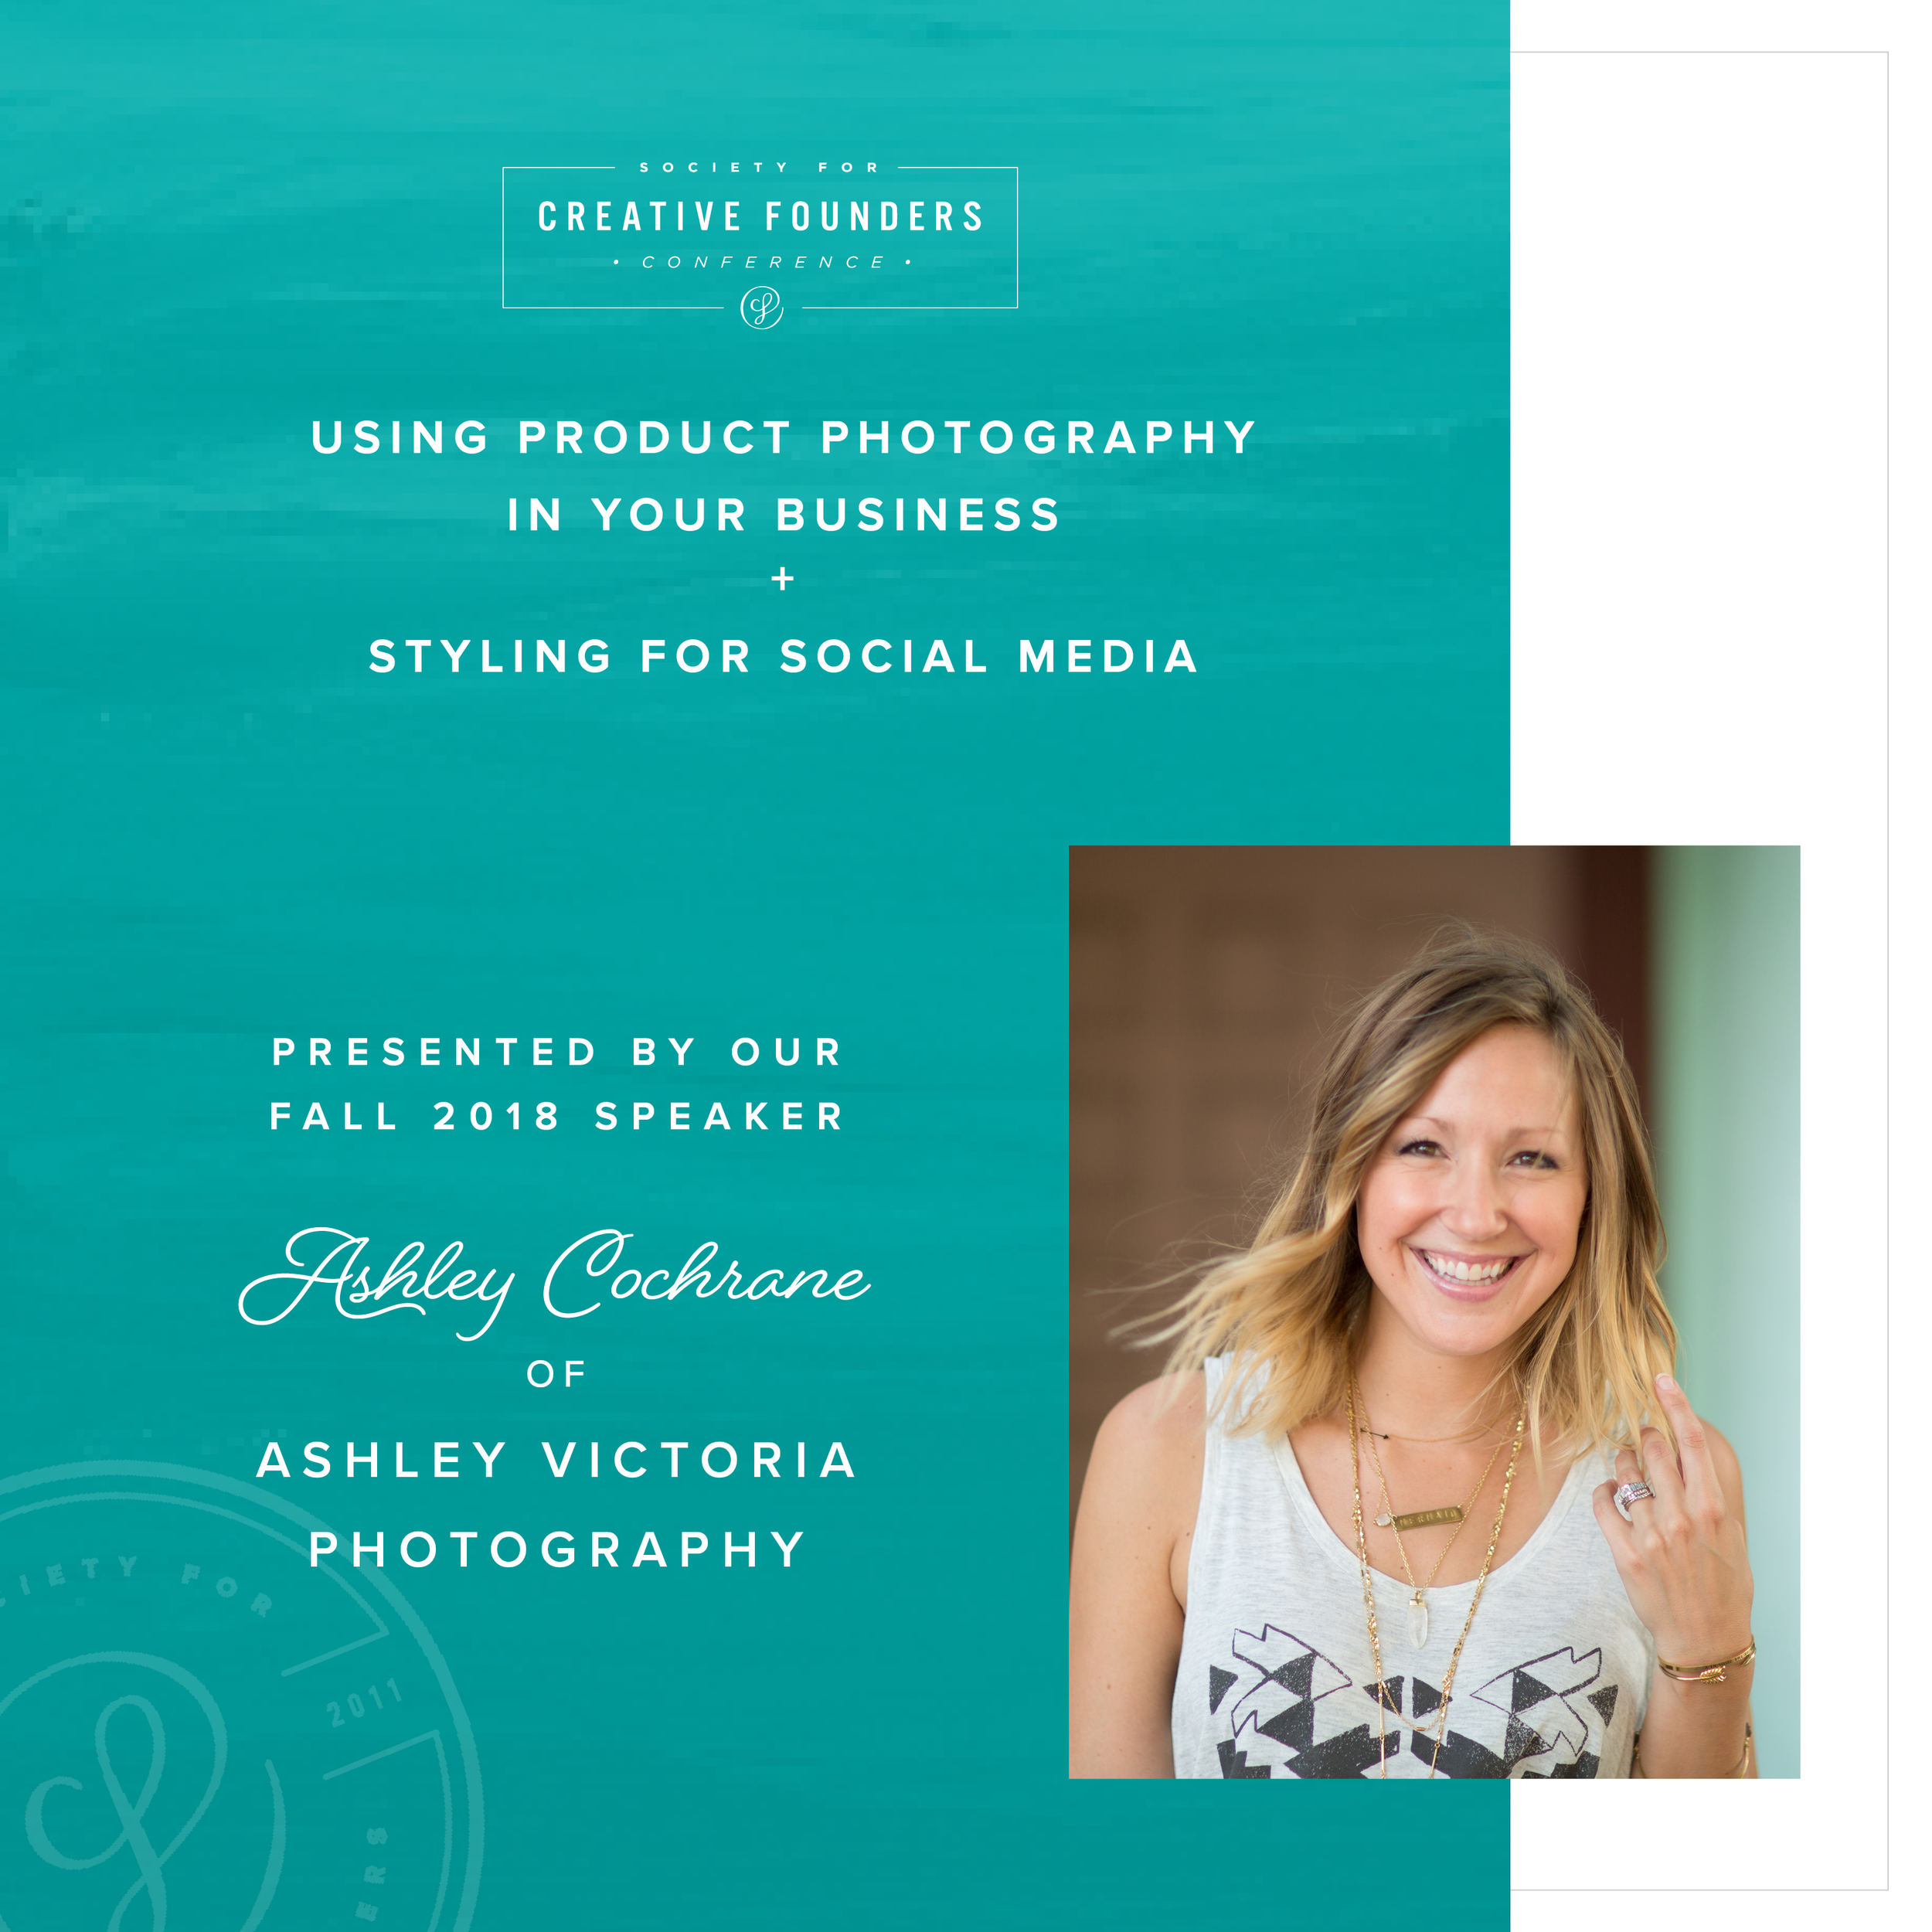 2018 Creative Founders Conference Speaker Ashley Cochrane of Ashley Victoria Photography